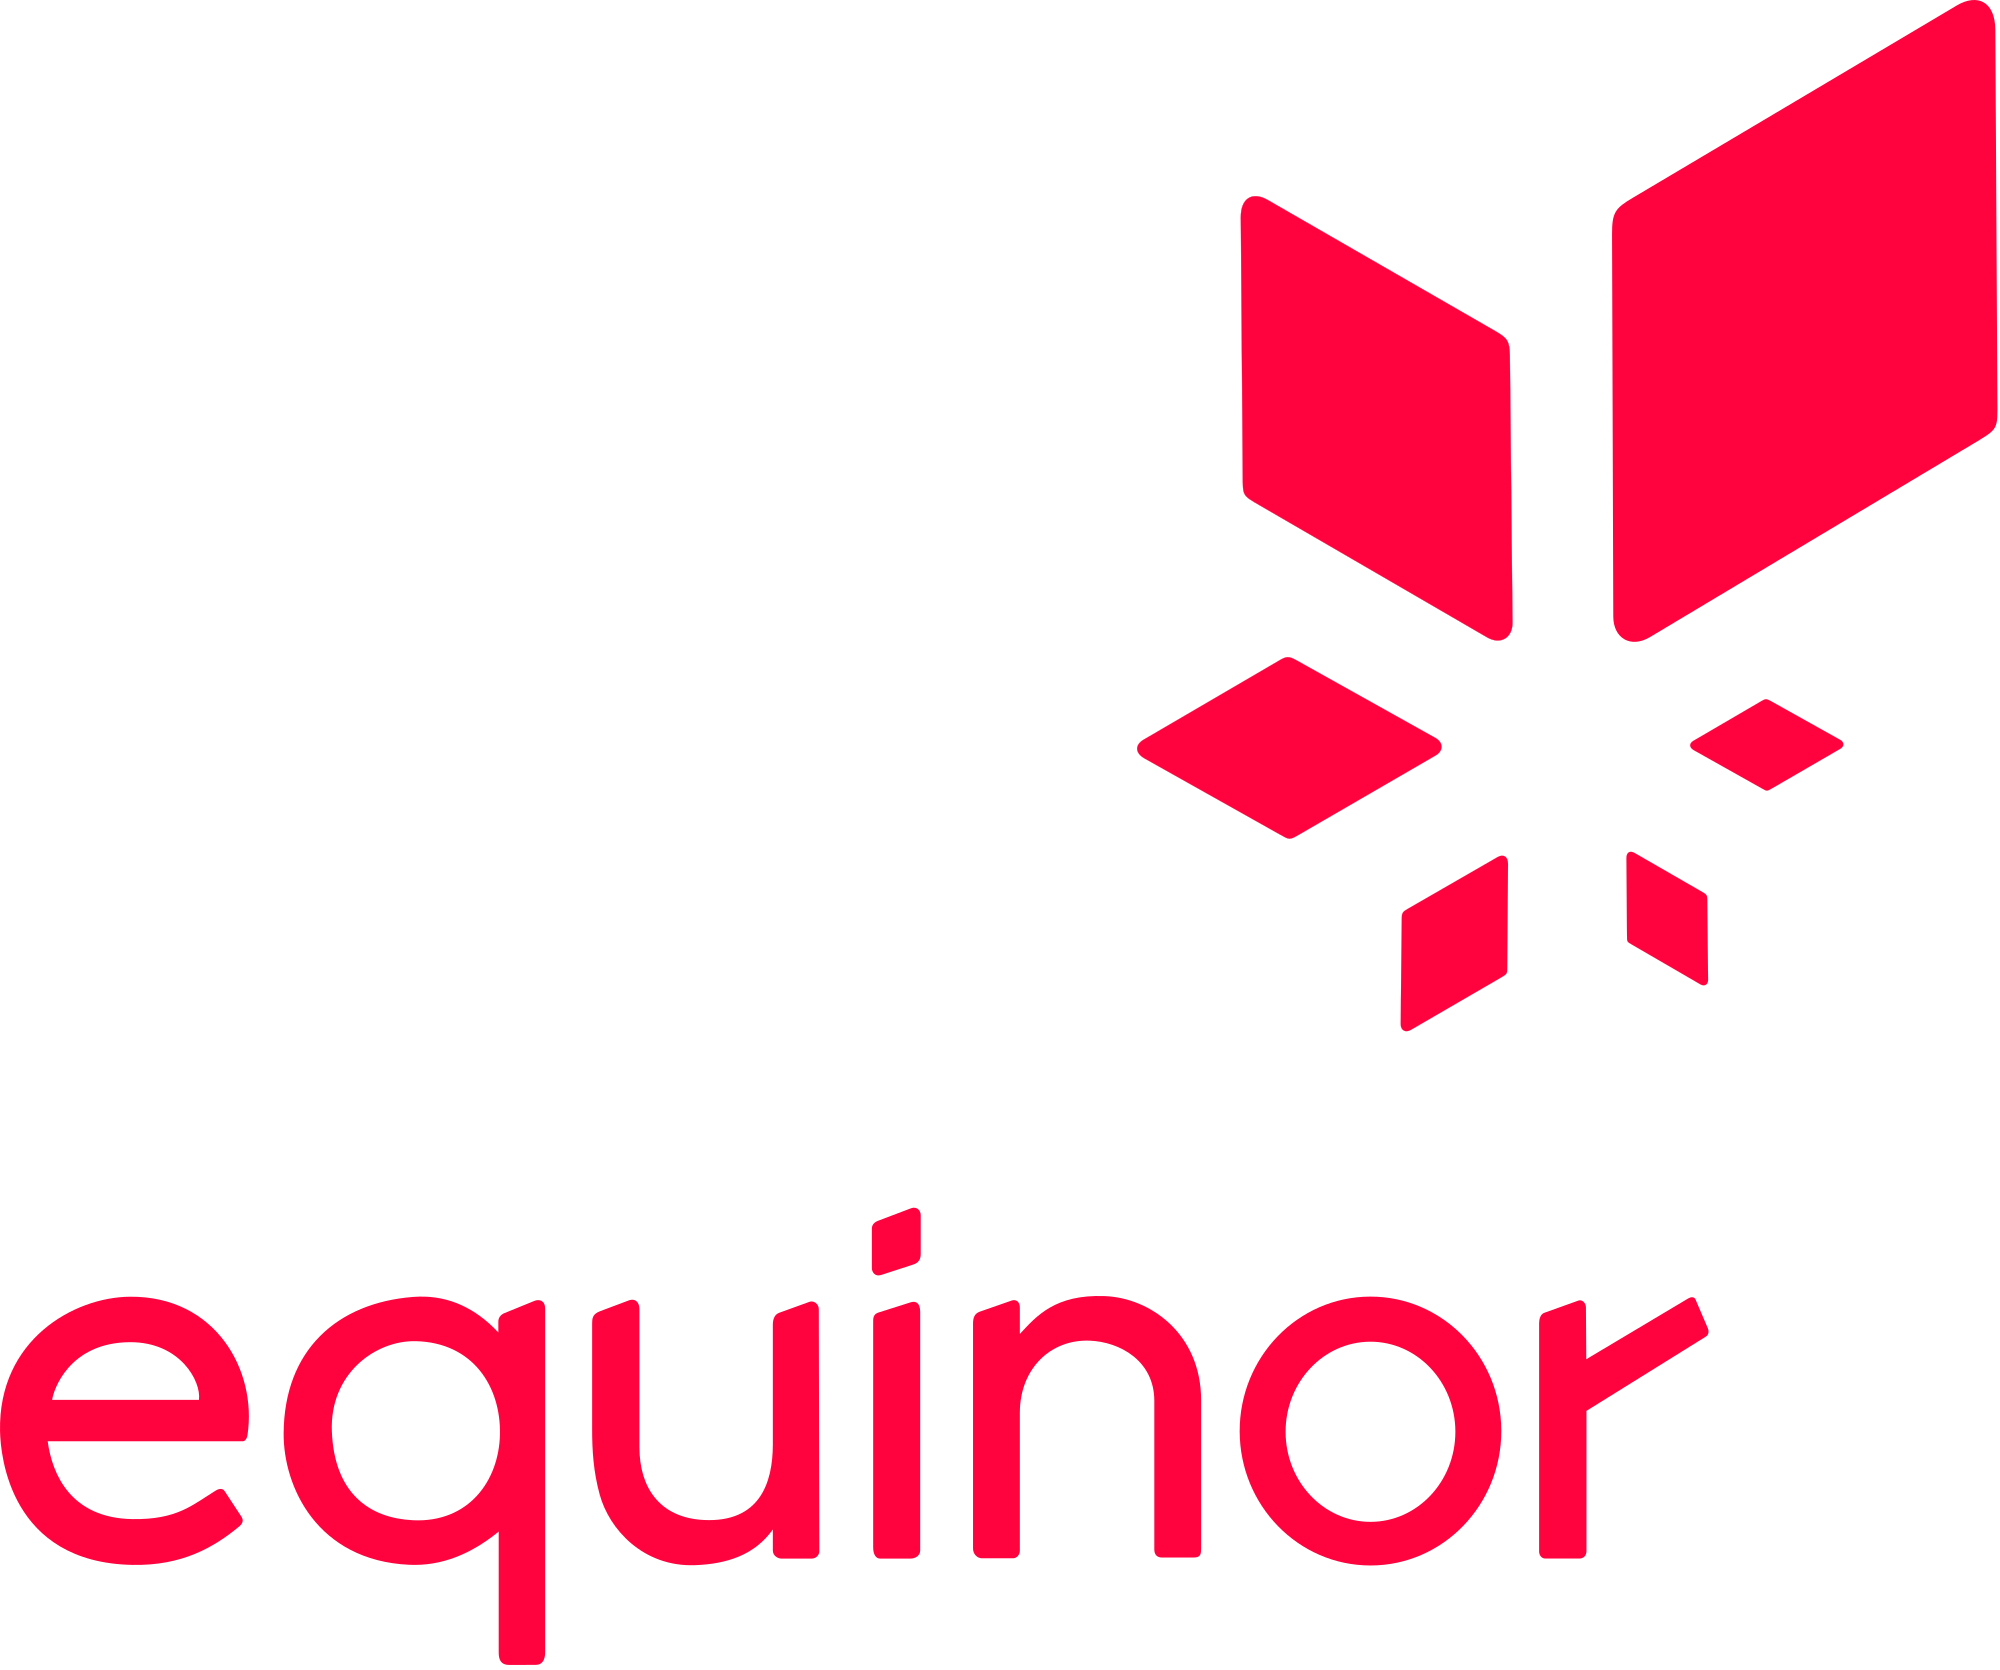 Equinor's forecast shifted for the peak oil demand